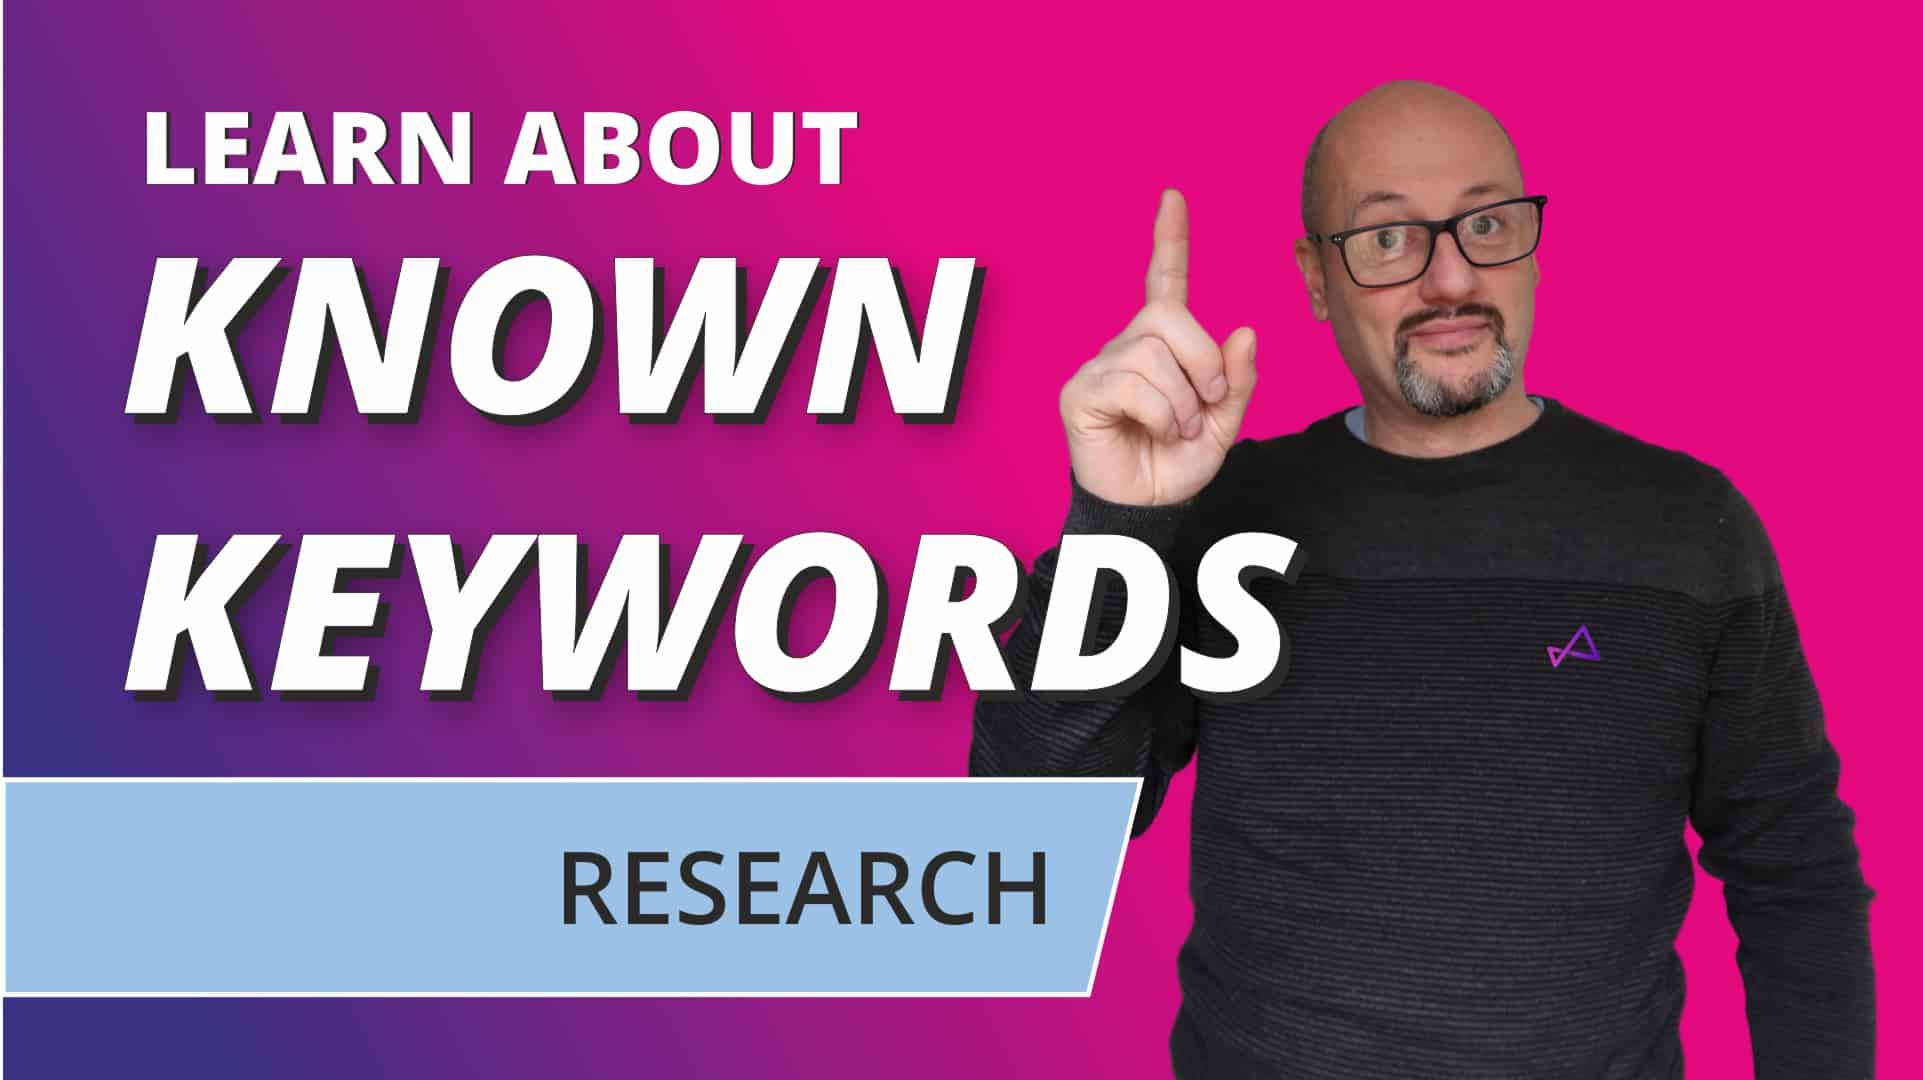 Known Keywords - learn more about